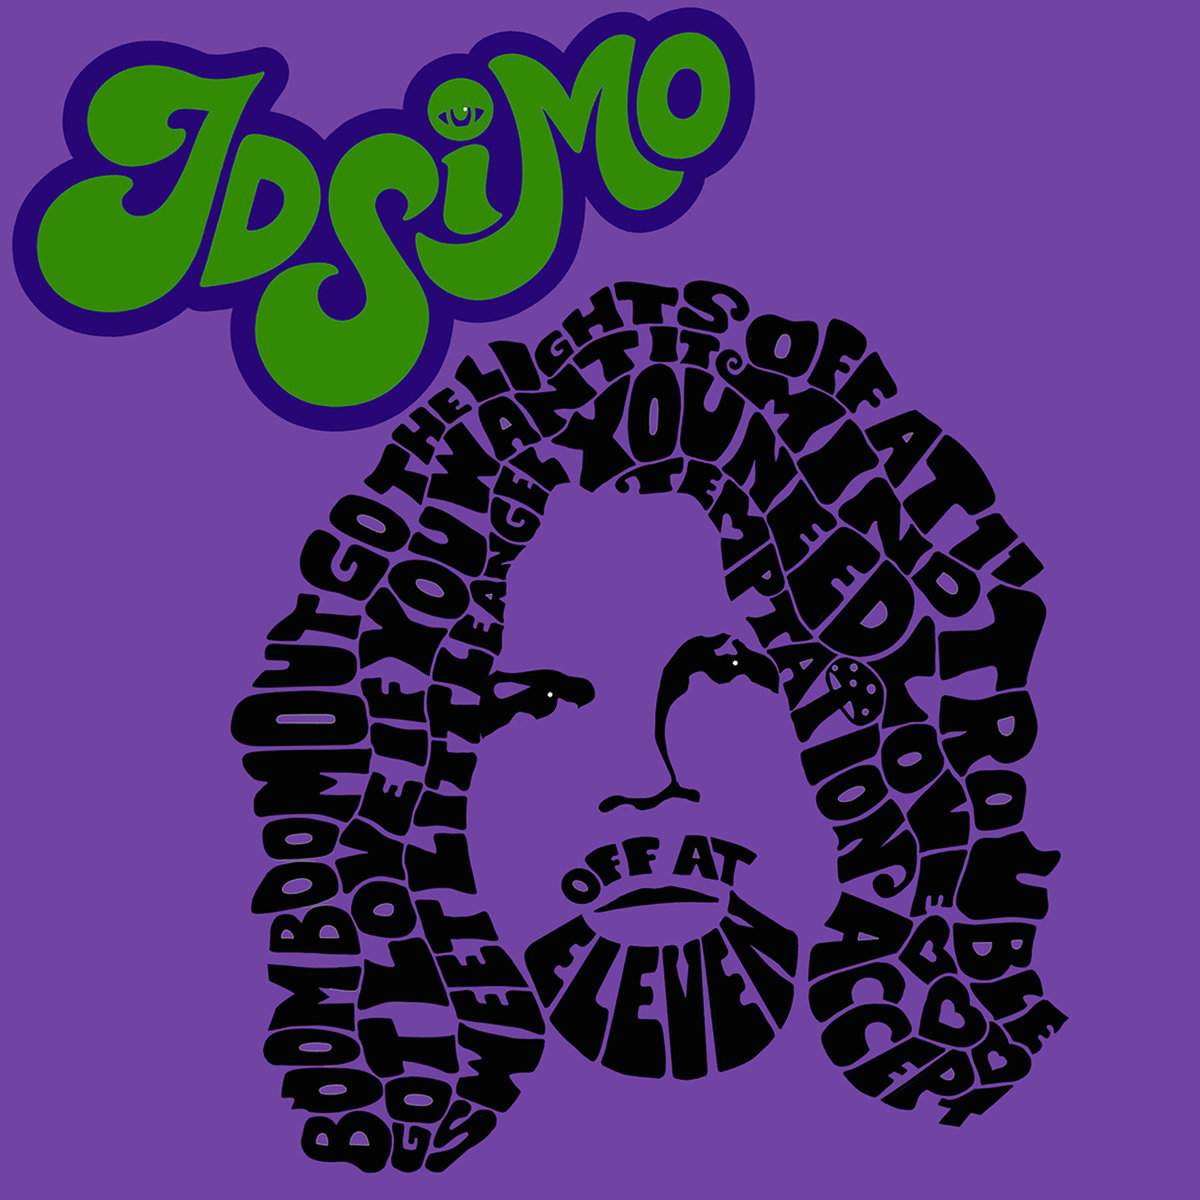 JD Simo gets Off At Eleven (so do we!)